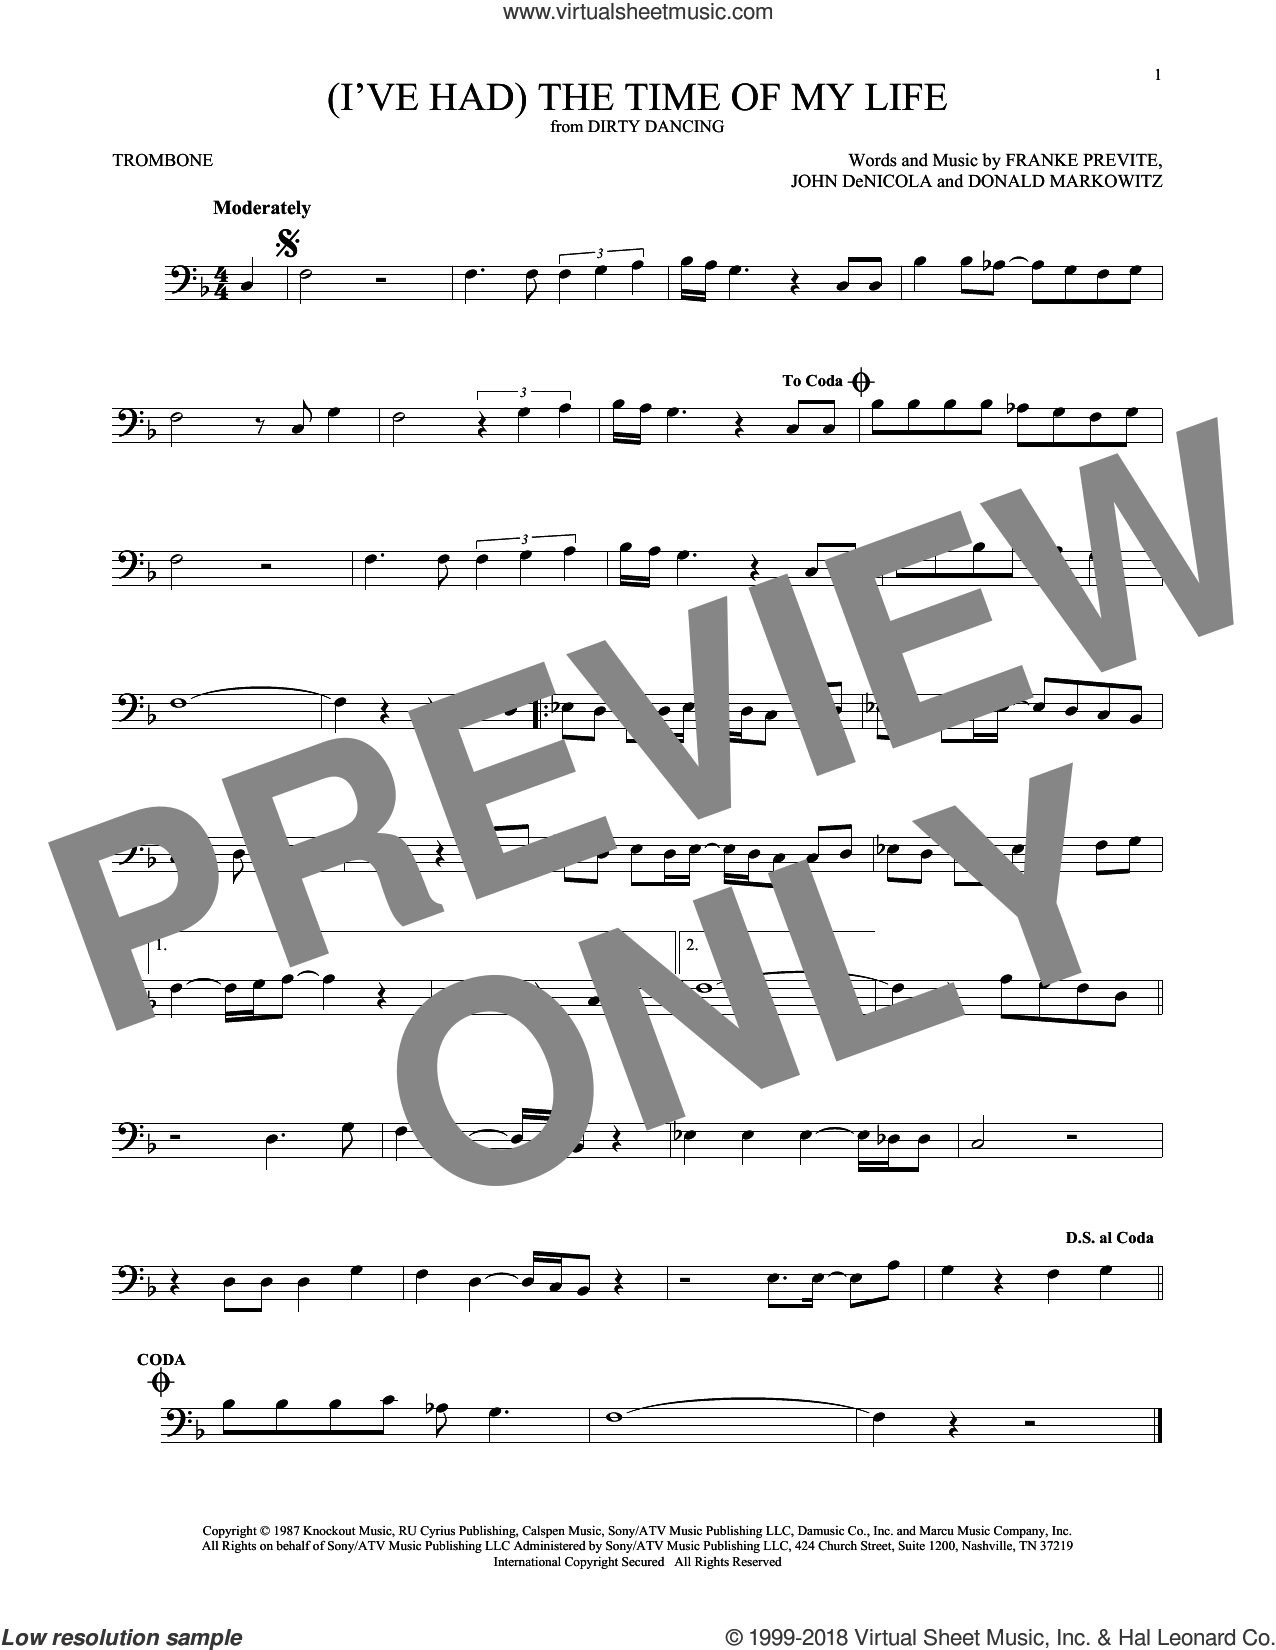 (I've Had) The Time Of My Life sheet music for trombone solo by Bill Medley & Jennifer Warnes, Donald Markowitz, Franke Previte and John DeNicola, intermediate skill level